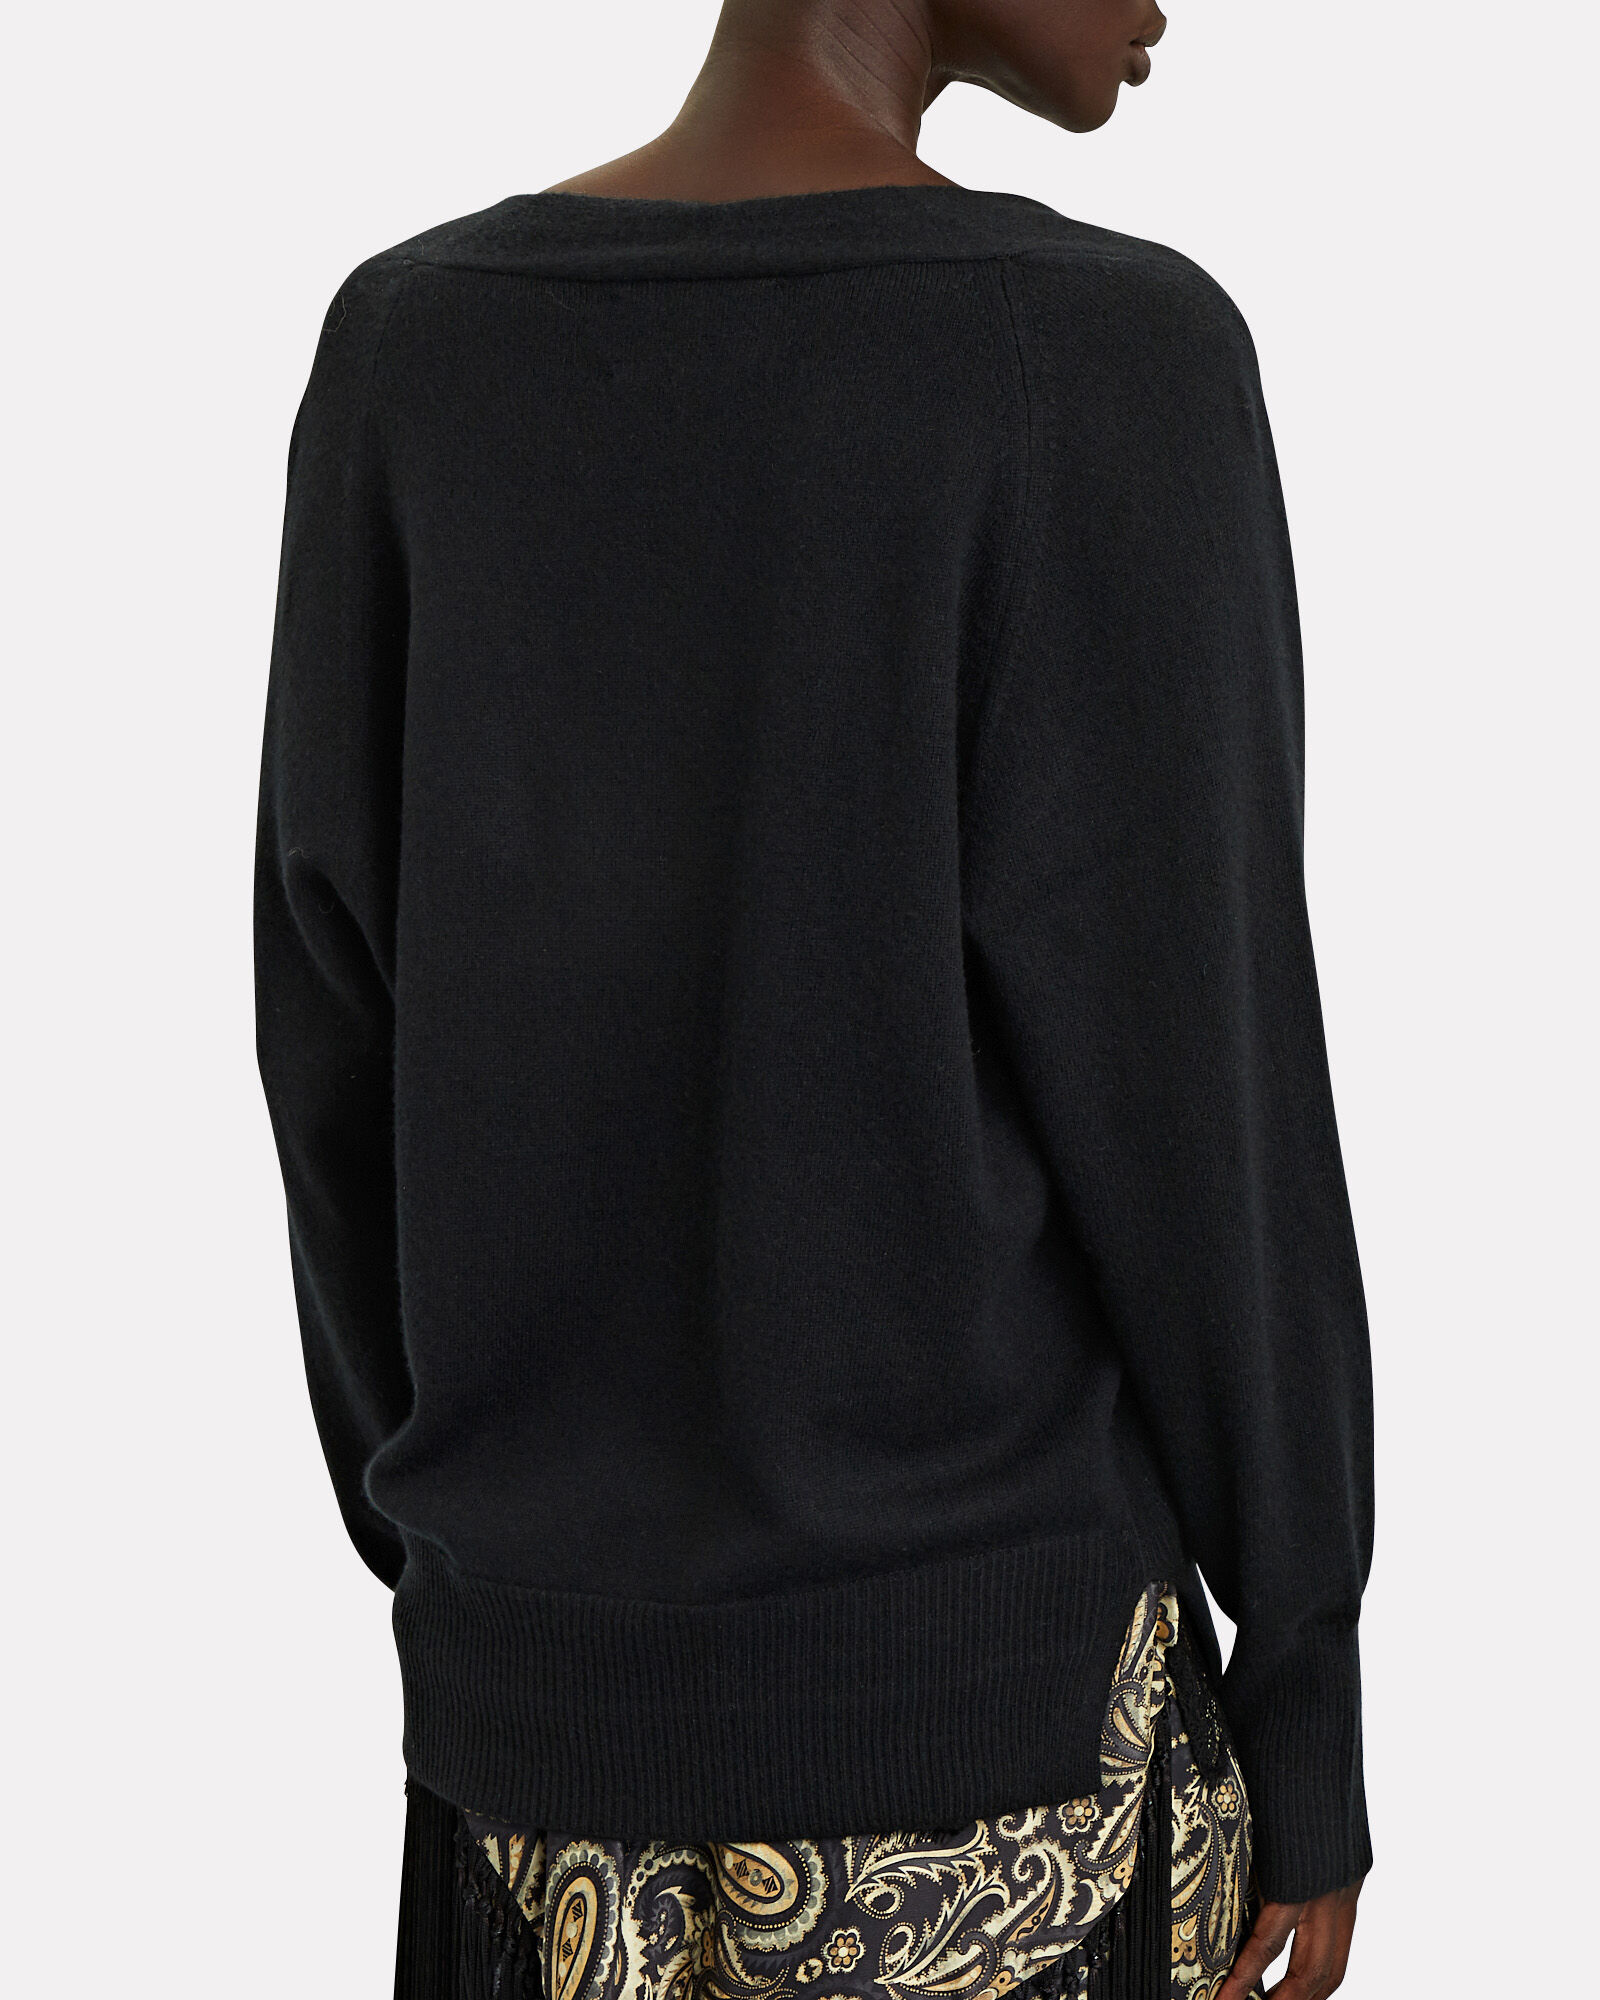 Looker Lace-Trimmed Sweater, BLACK, hi-res